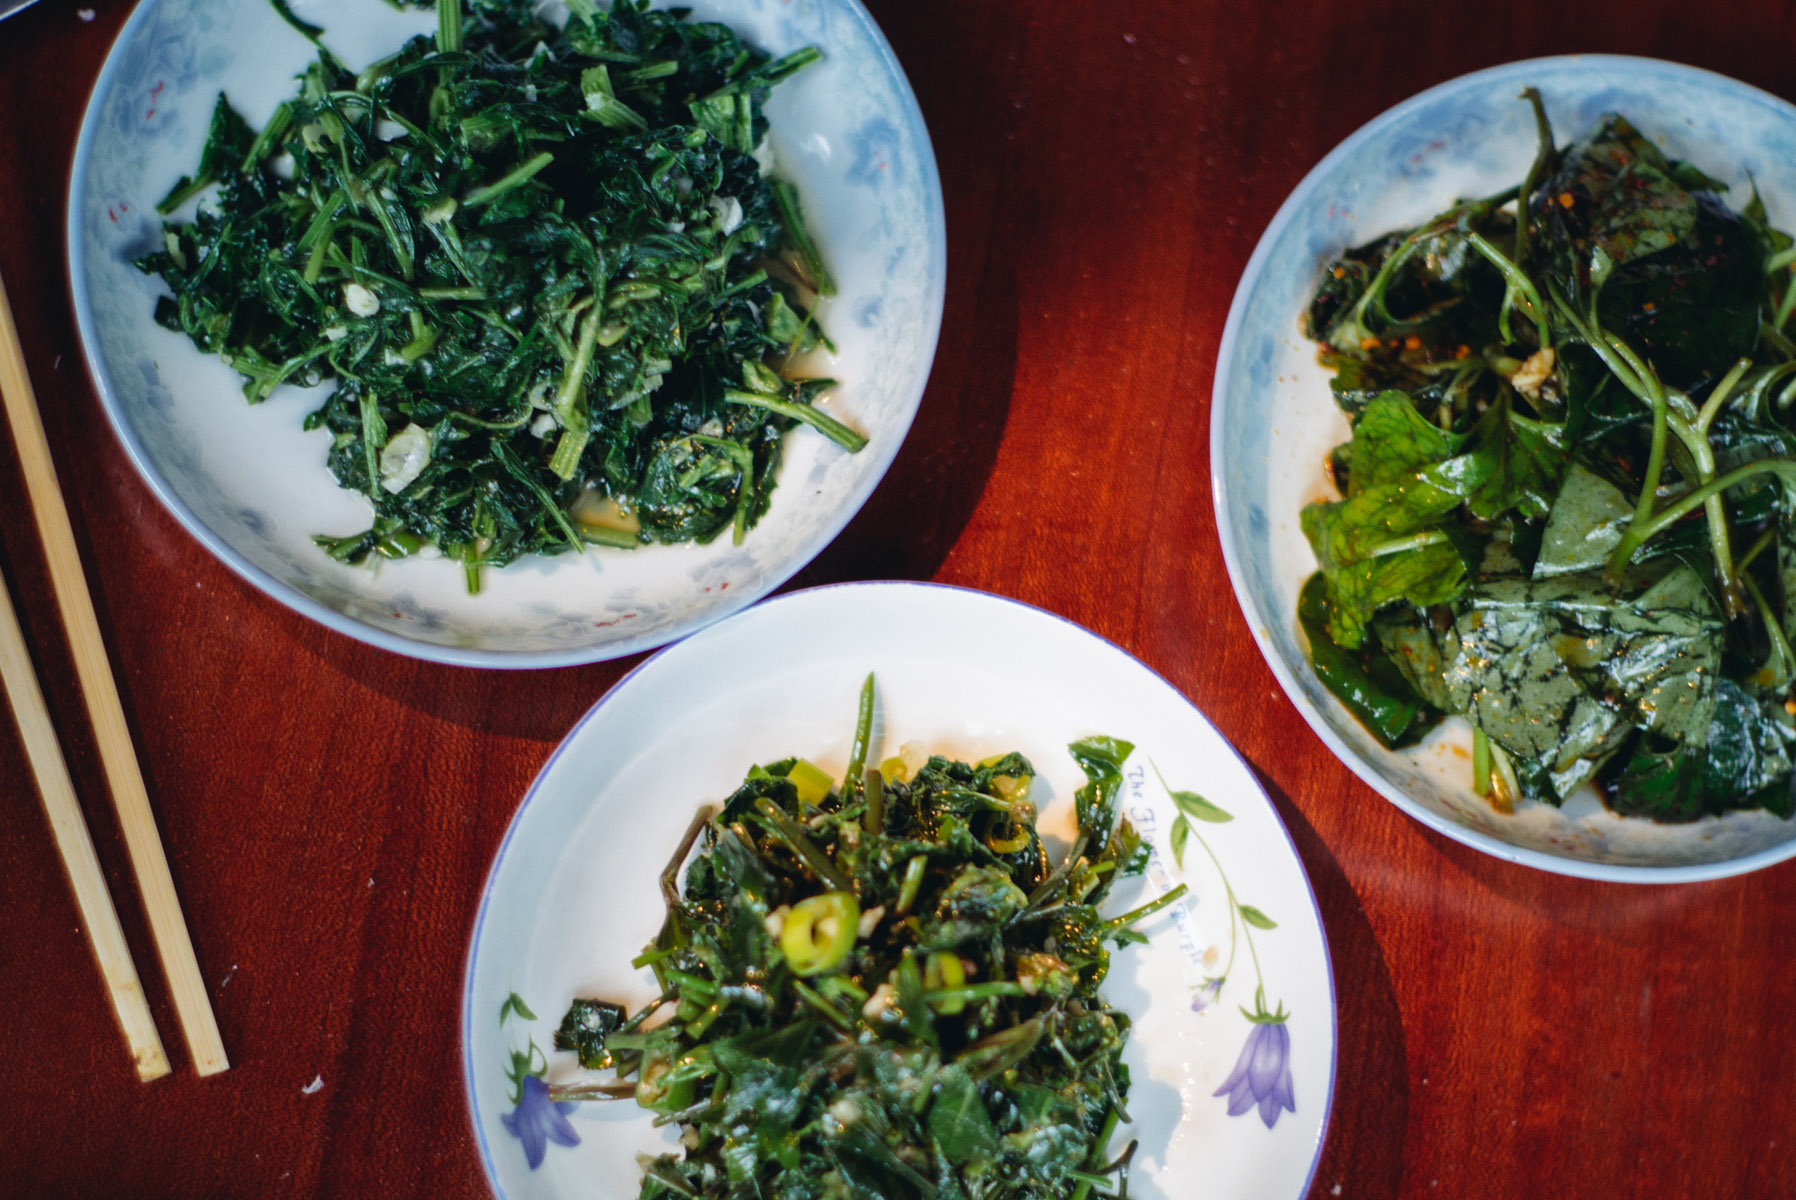 fishmintforaging_plated-foraged-greens_27239377714_o